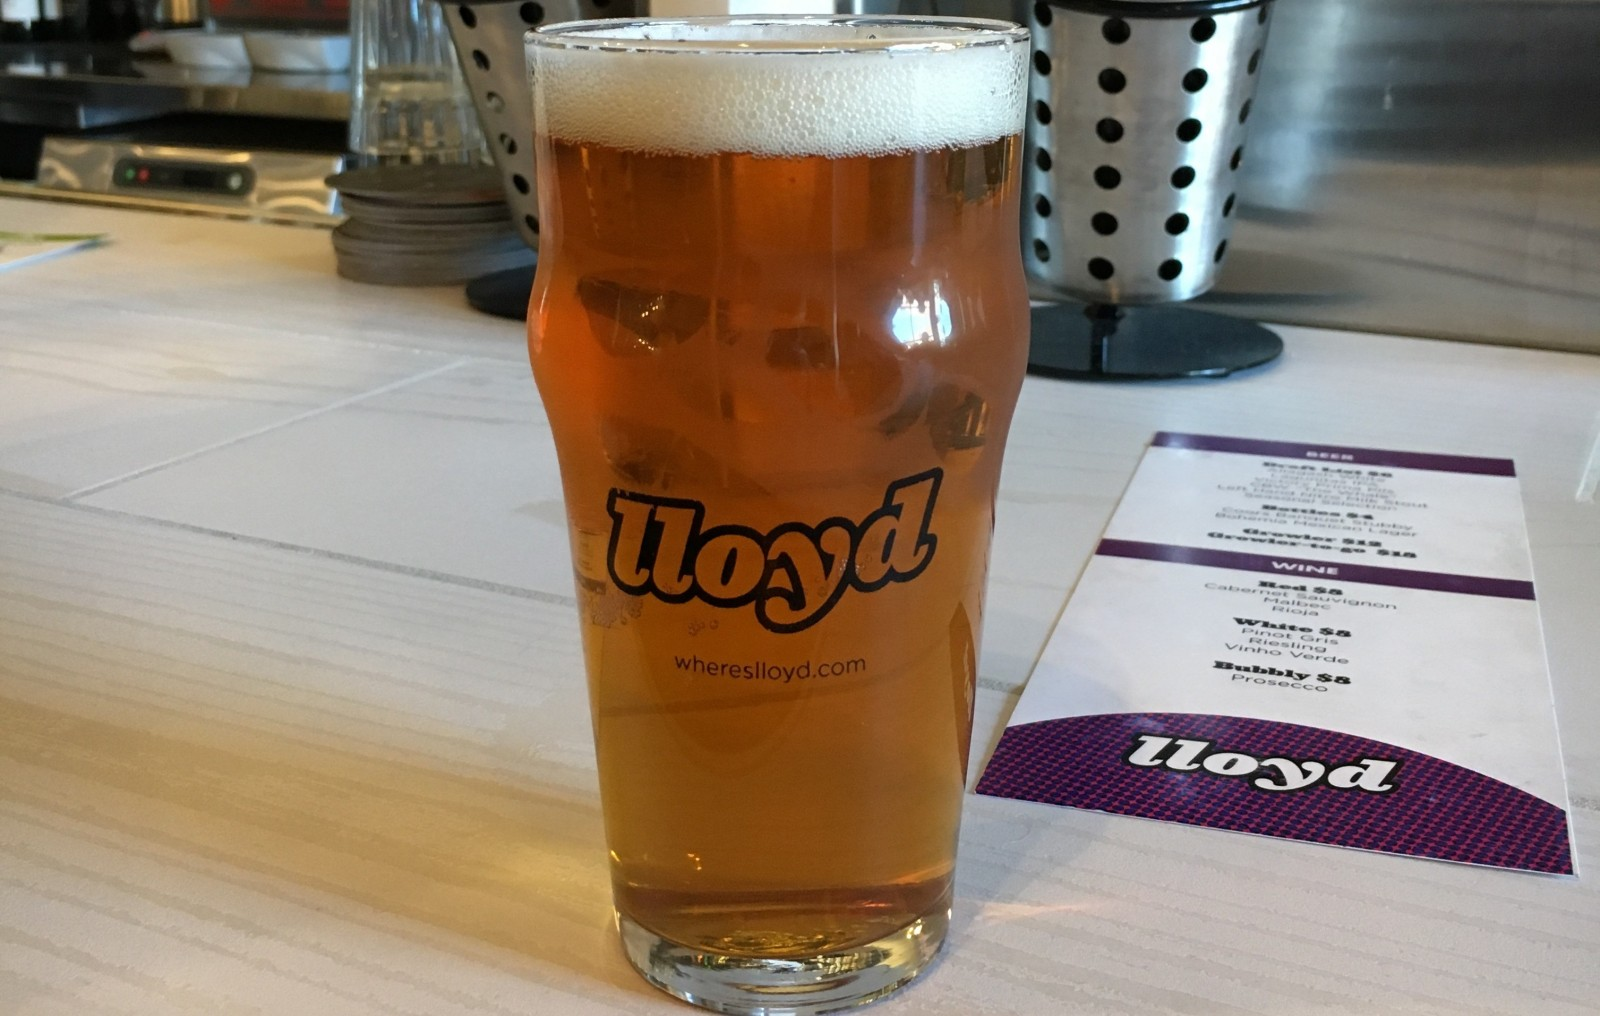 Lagunitas IPA at Lloyd Taco Factory on Hertel Avenue. (Michael Farrell/Special to The News)